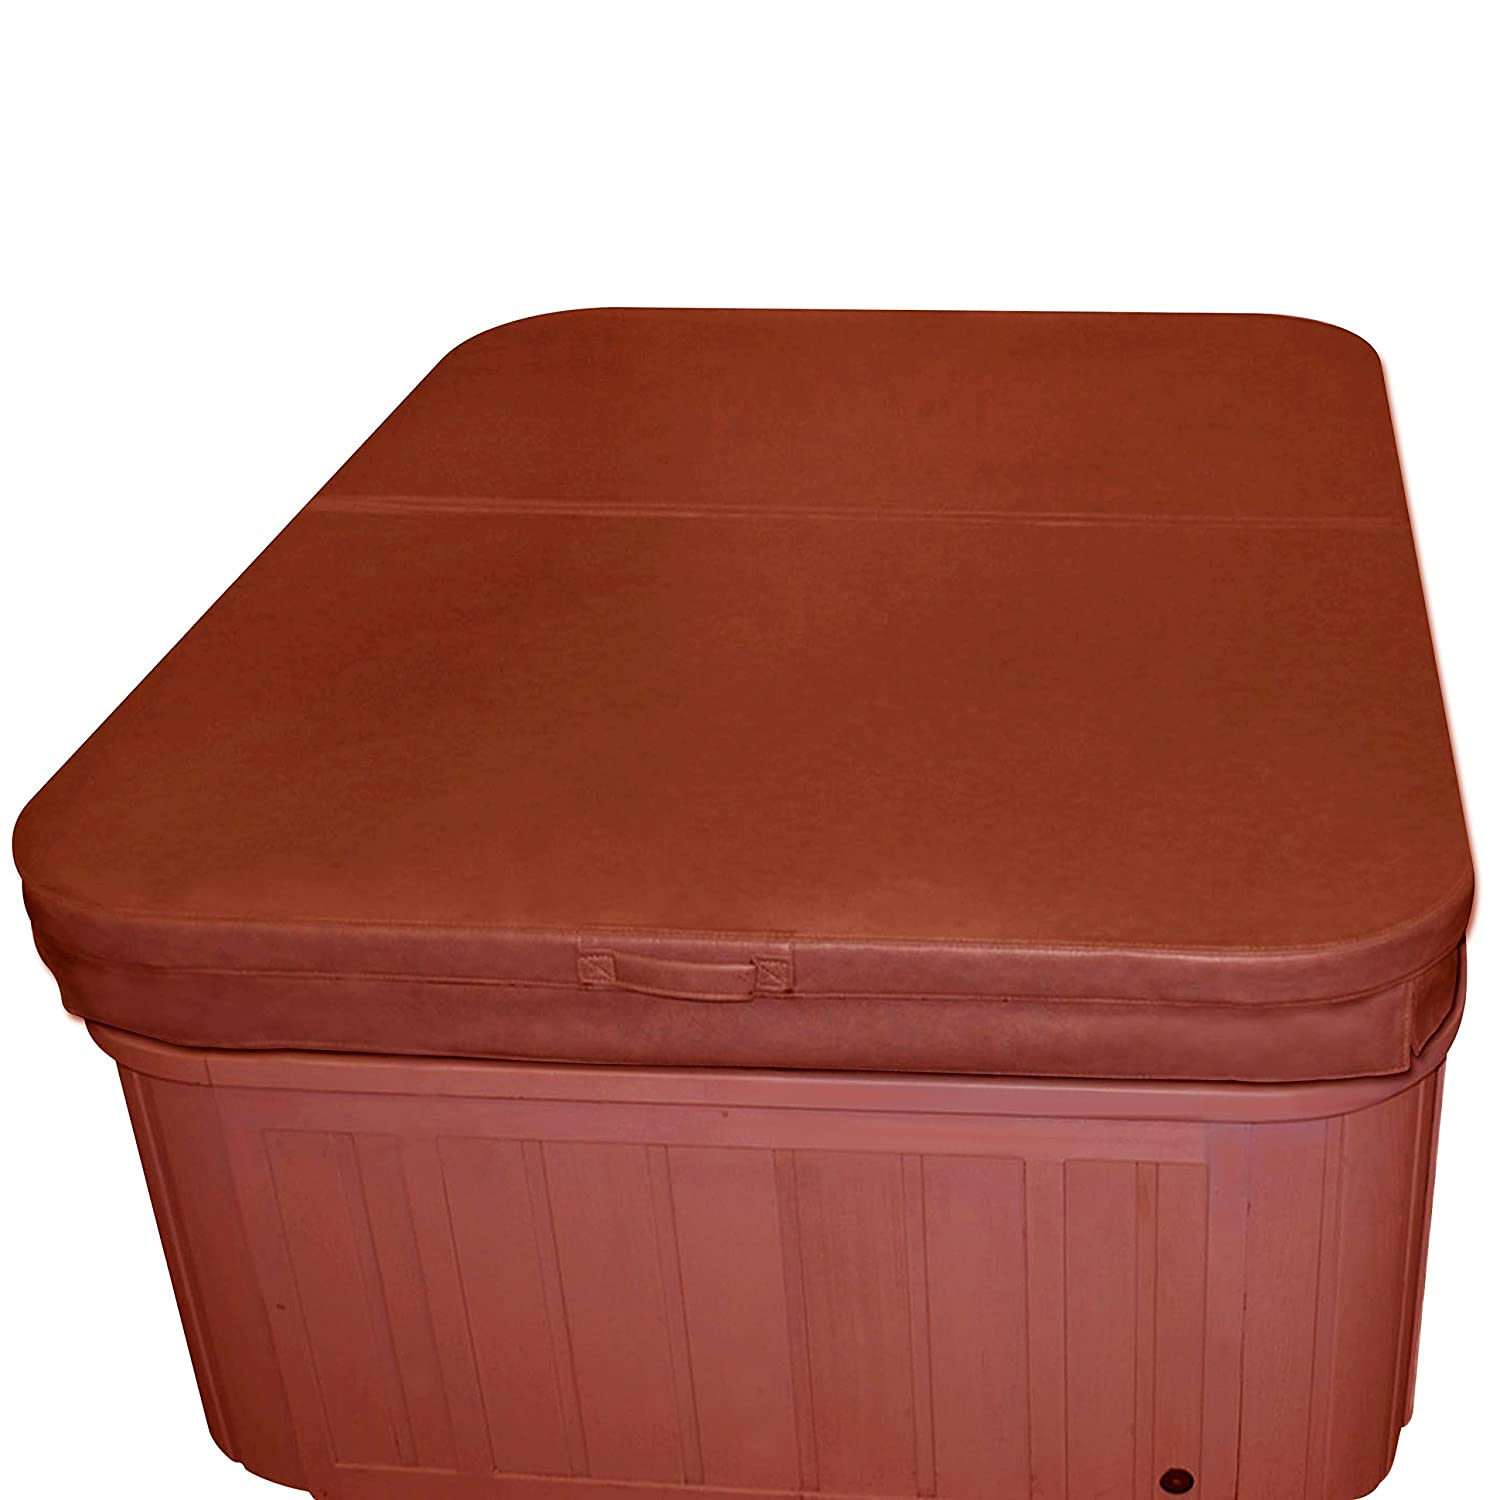 Hot Springs Grandee Replacement Spa Cover and Hot Tub Cover Brown